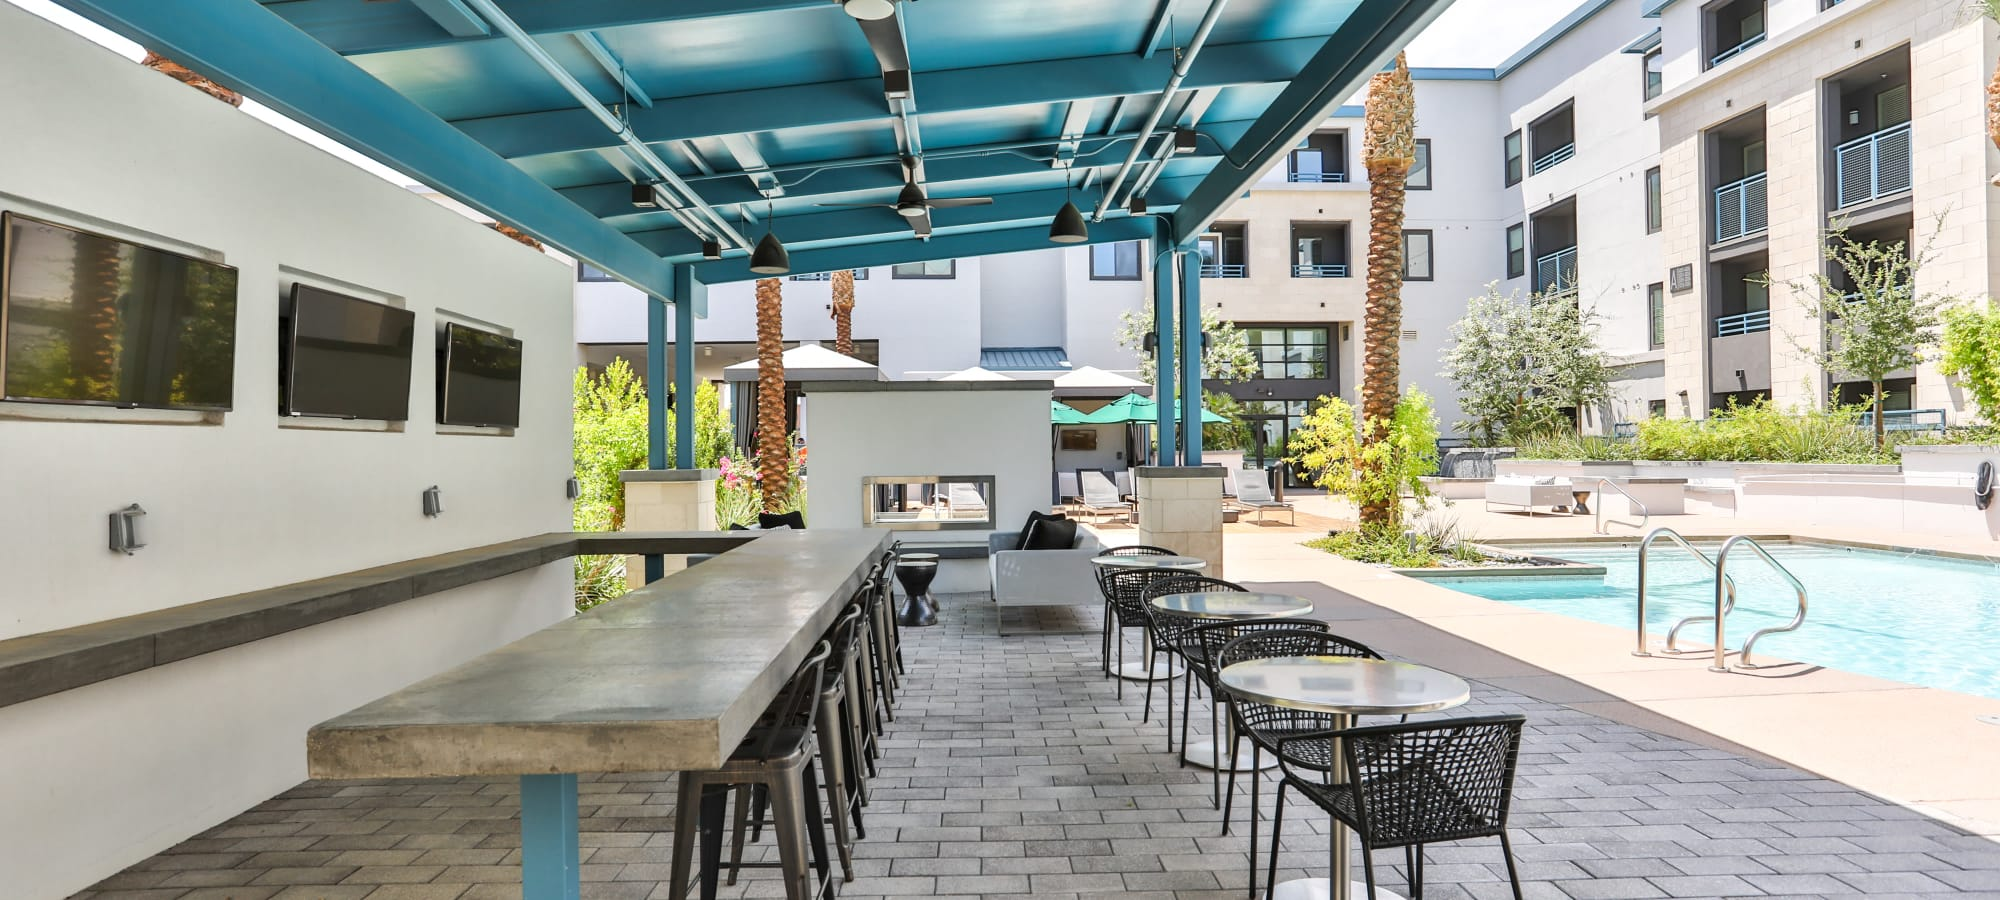 Outdoor bar seating with flat-screen TVs at Lakeside Drive Apartments in Tempe, Arizona